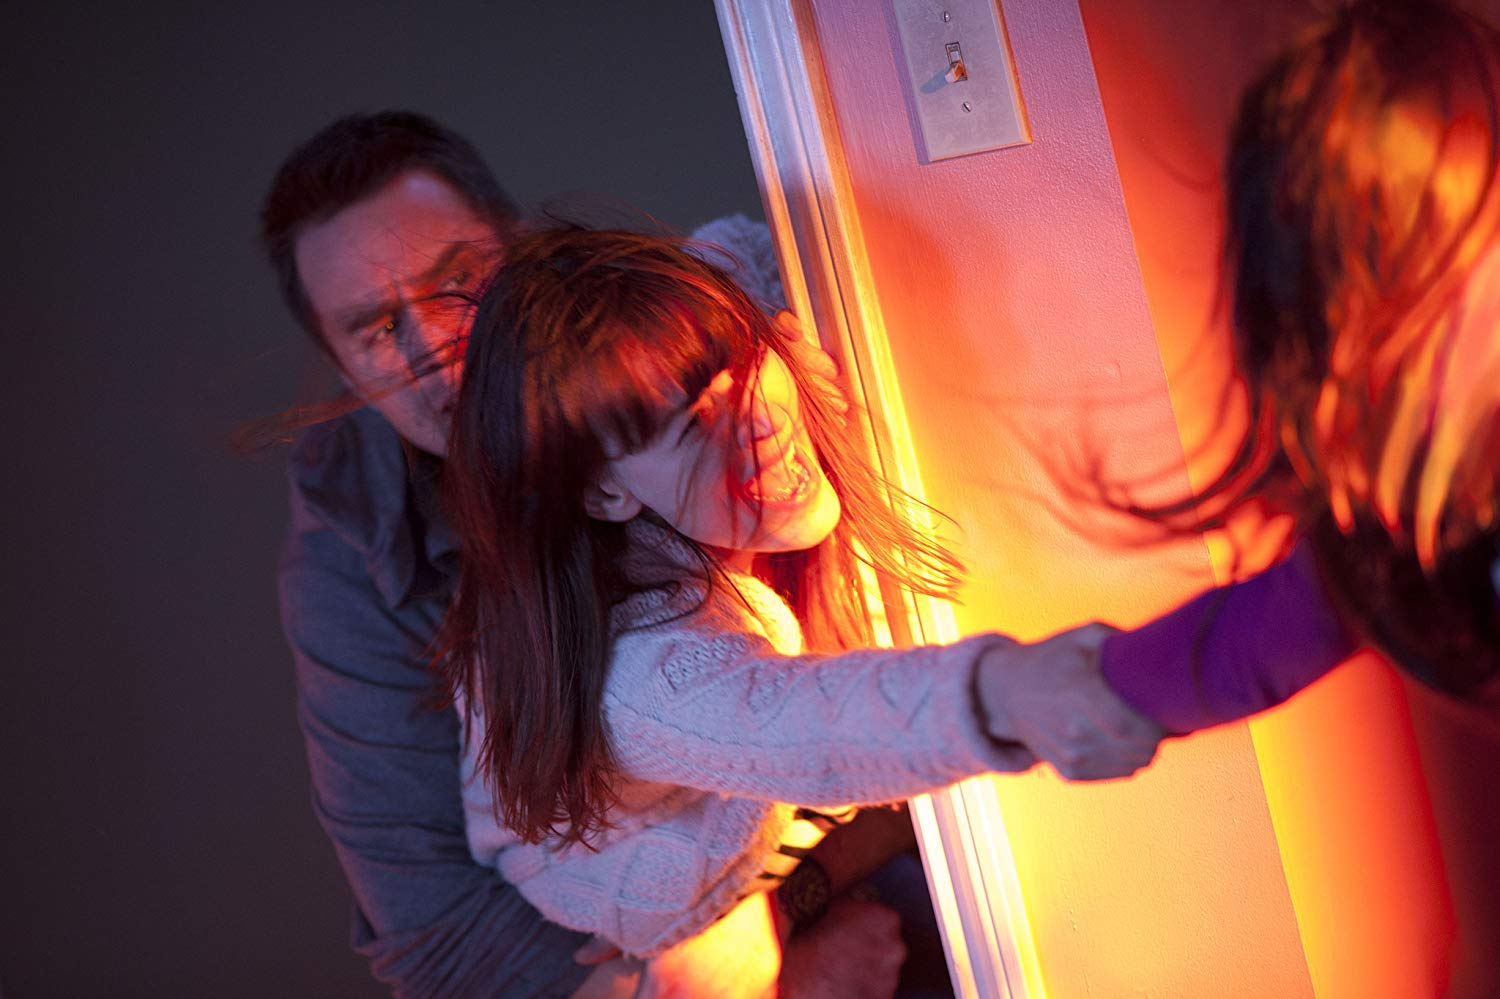 Parents Sam Rockwell and Rosemarie DeWitt try to save Kennedi Clements as she is dragged into the cupboard in Poltergeist (2015)